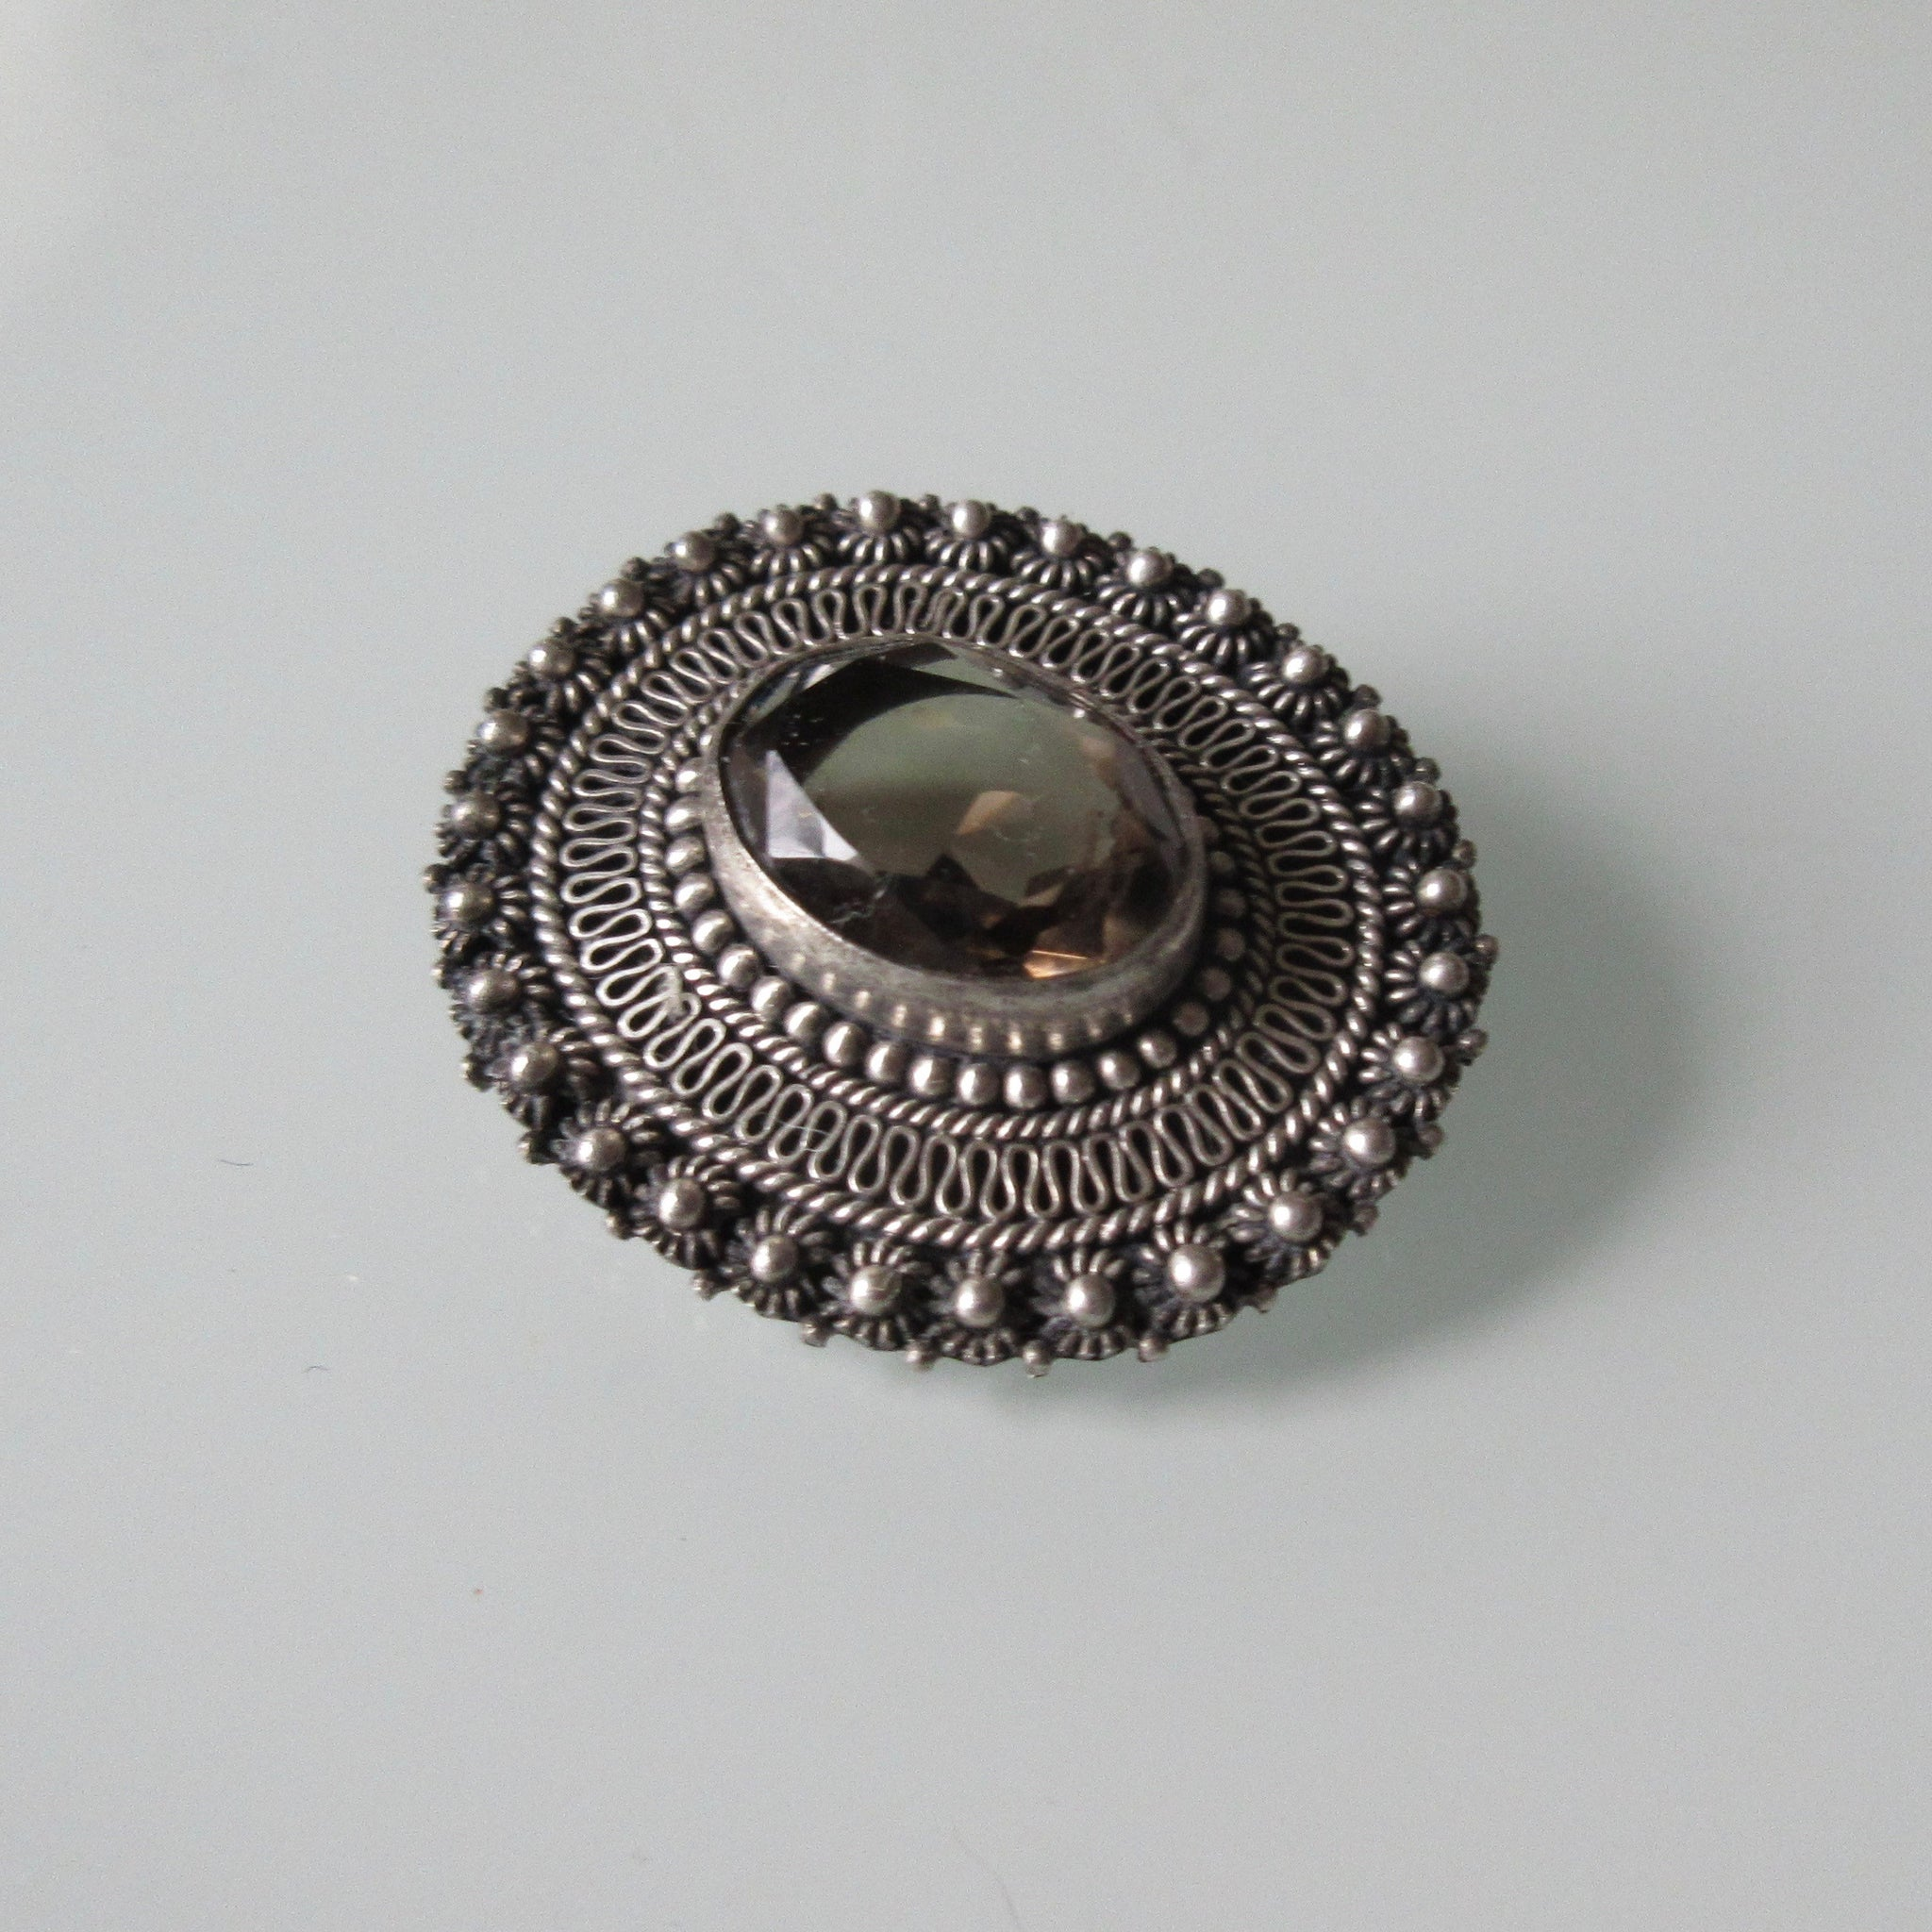 Vintage Faceted Smokey Quartz Filgree Sterling Silver Brooch or Pendant